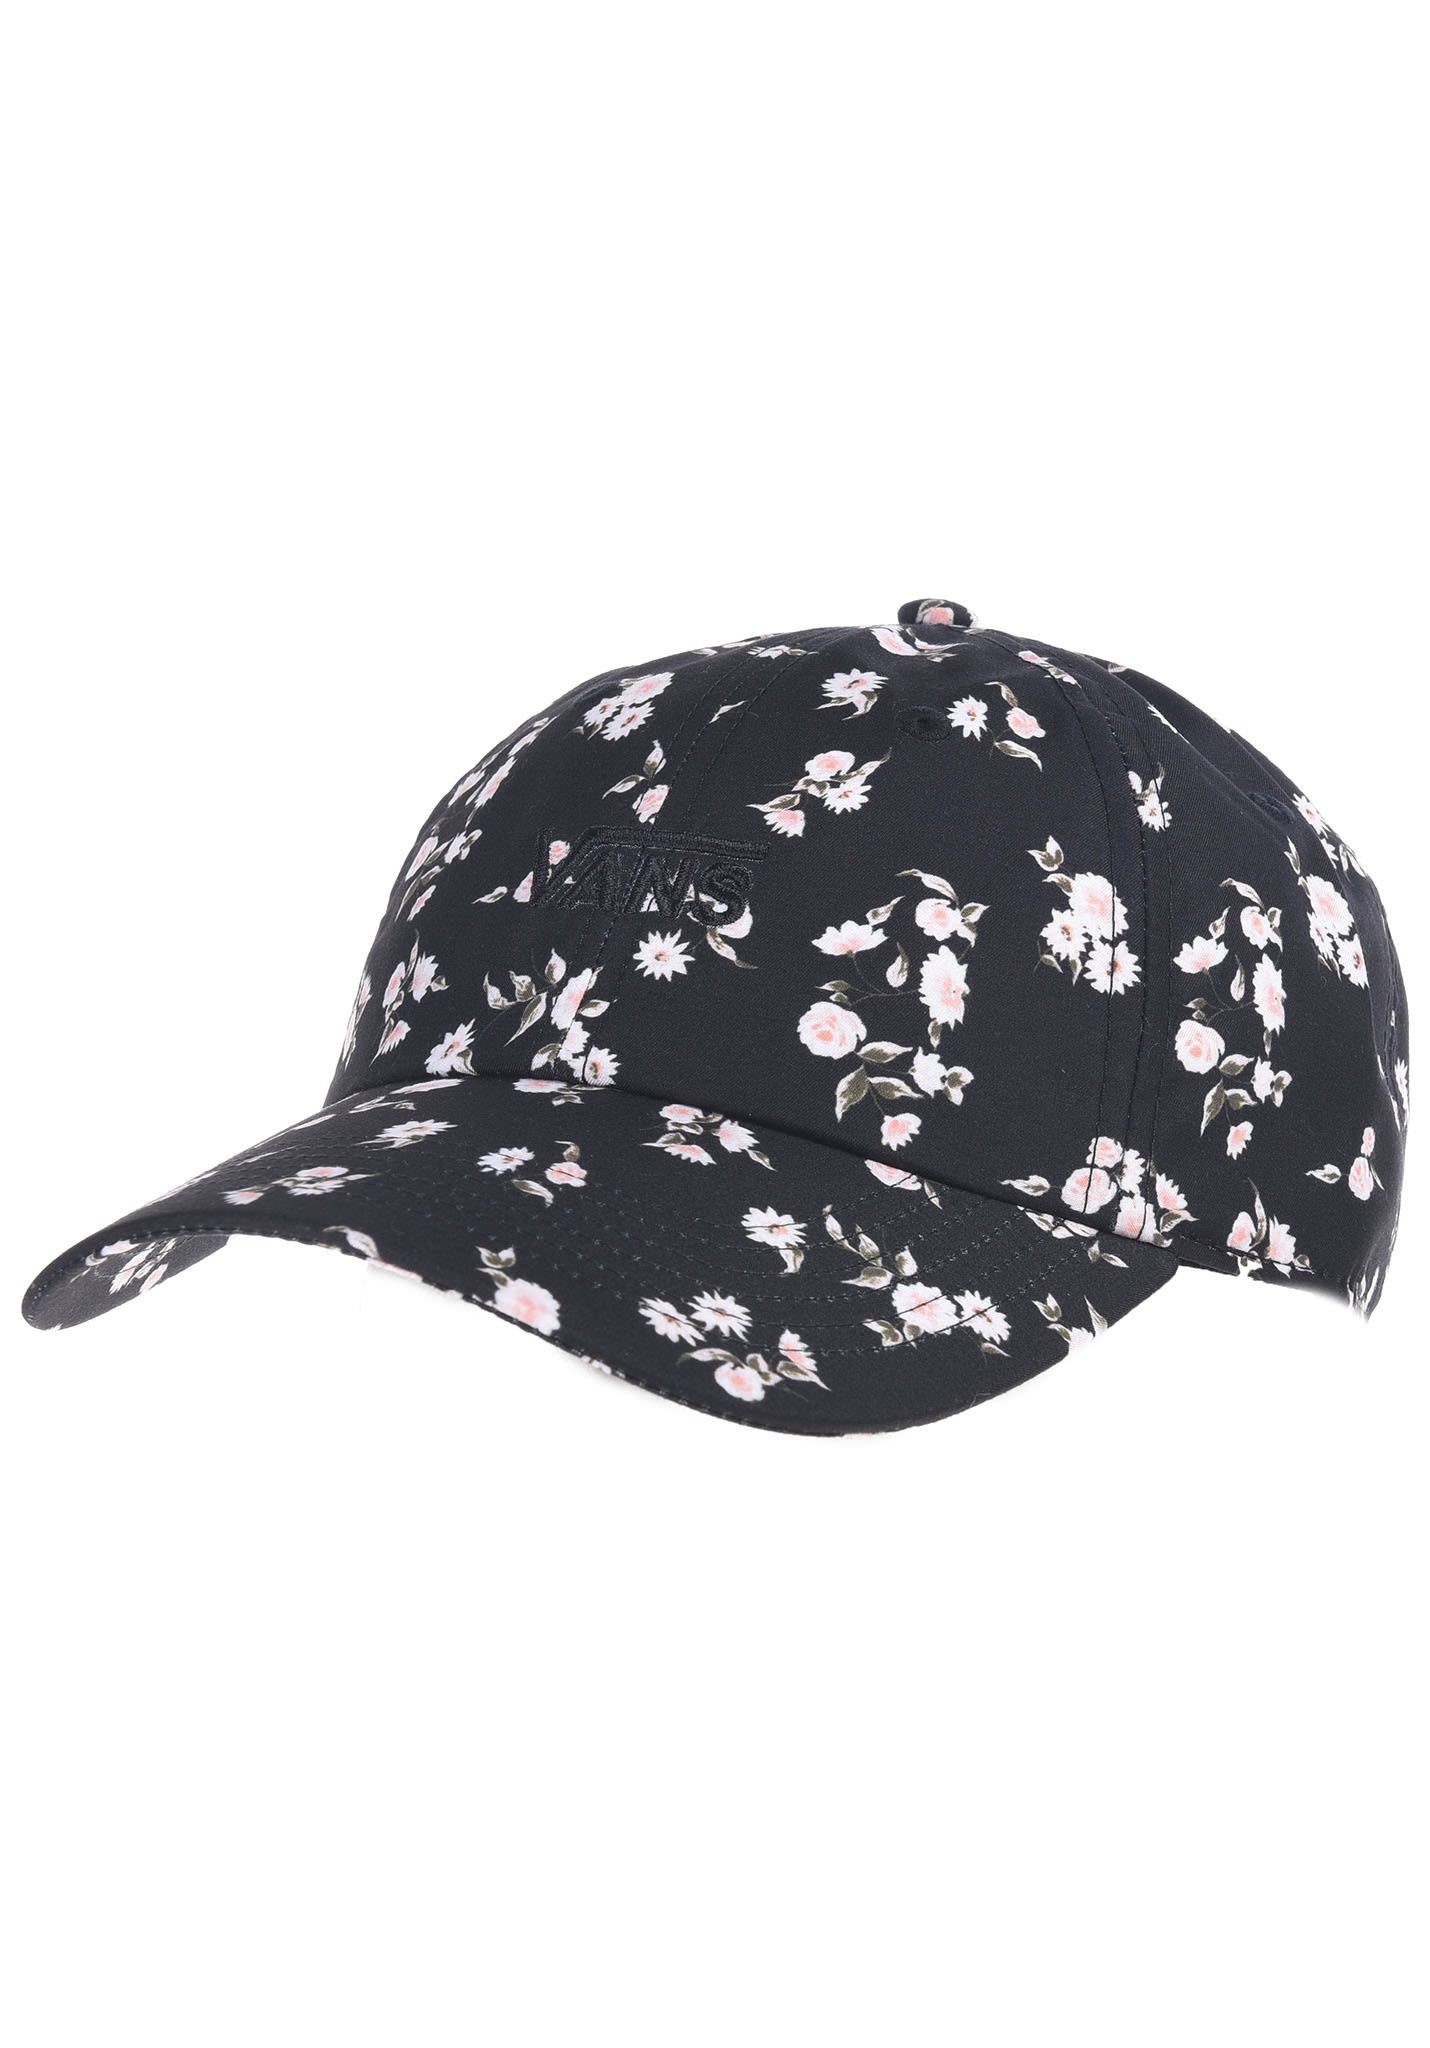 65dd30066fa0c8 VANS Court Side Printed - Cap für Damen - Schwarz - Planet Sports